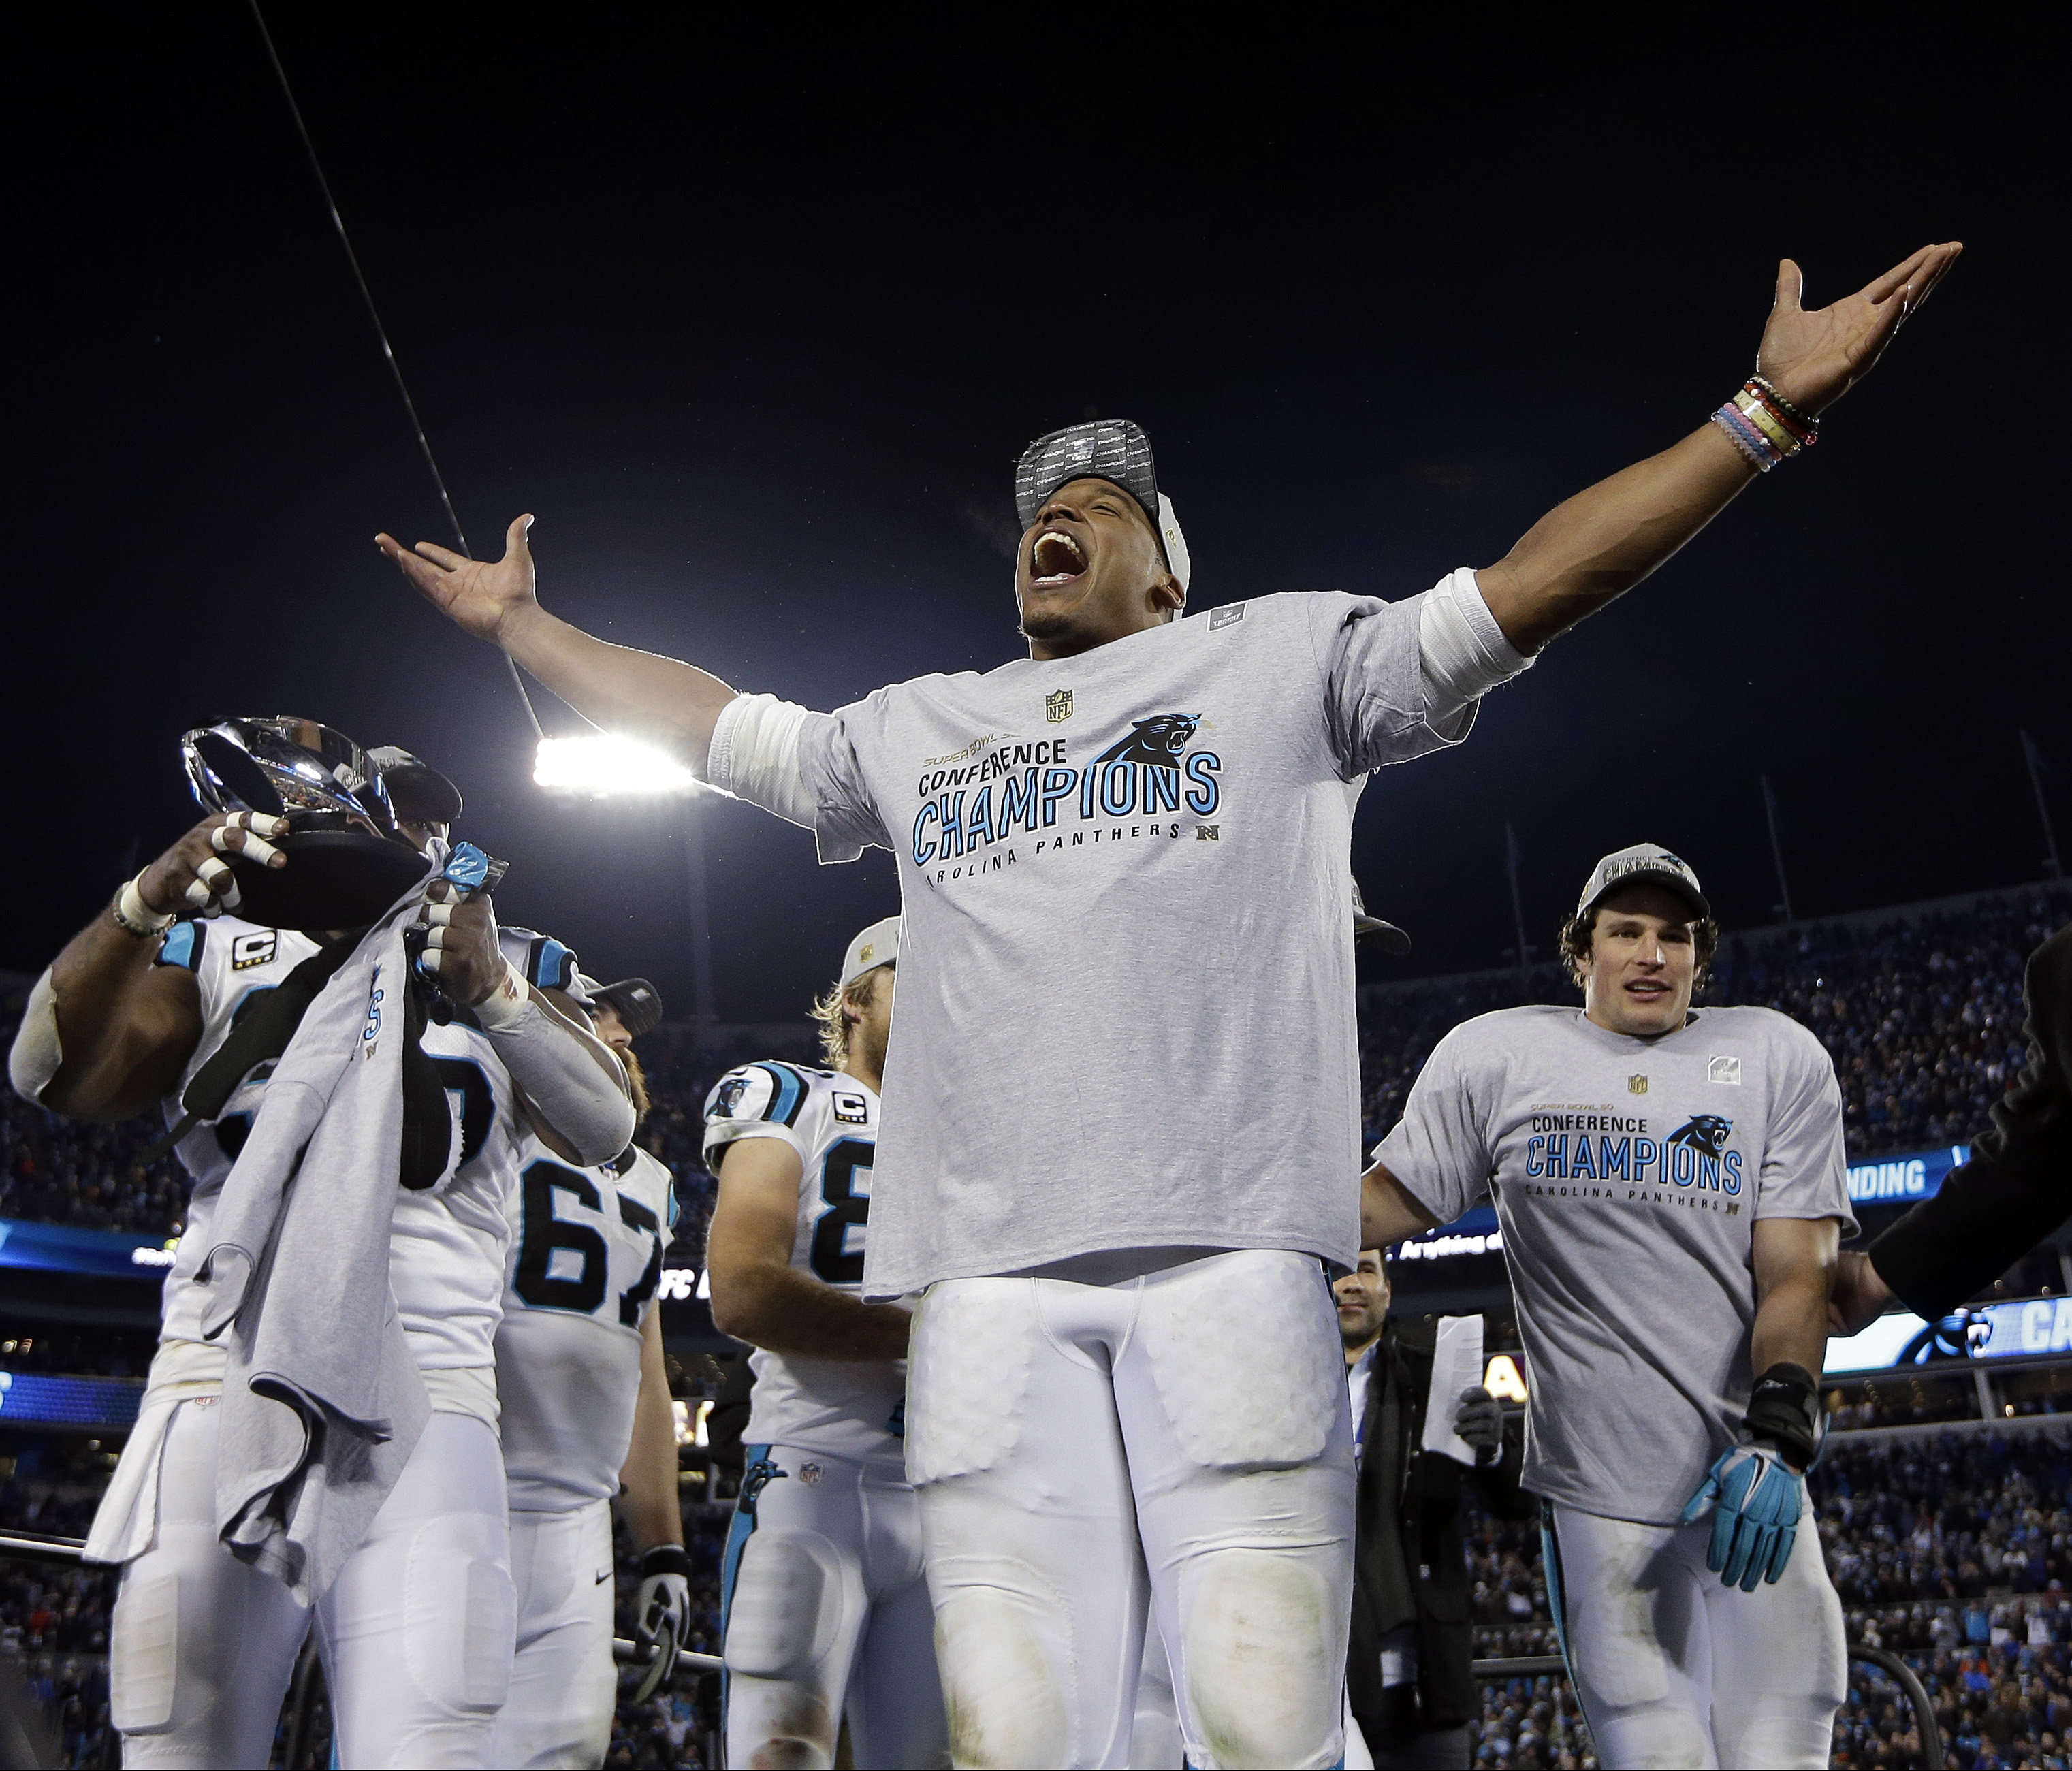 FILE - In this Jan. 24, 2016 file photo, Carolina Panthers' Cam Newton celebrates after the NFL football NFC Championship game against the Arizona Cardinals in Charlotte, N.C. Newton is wearing Lokai silicone bead bracelets with a bit of water from Mount